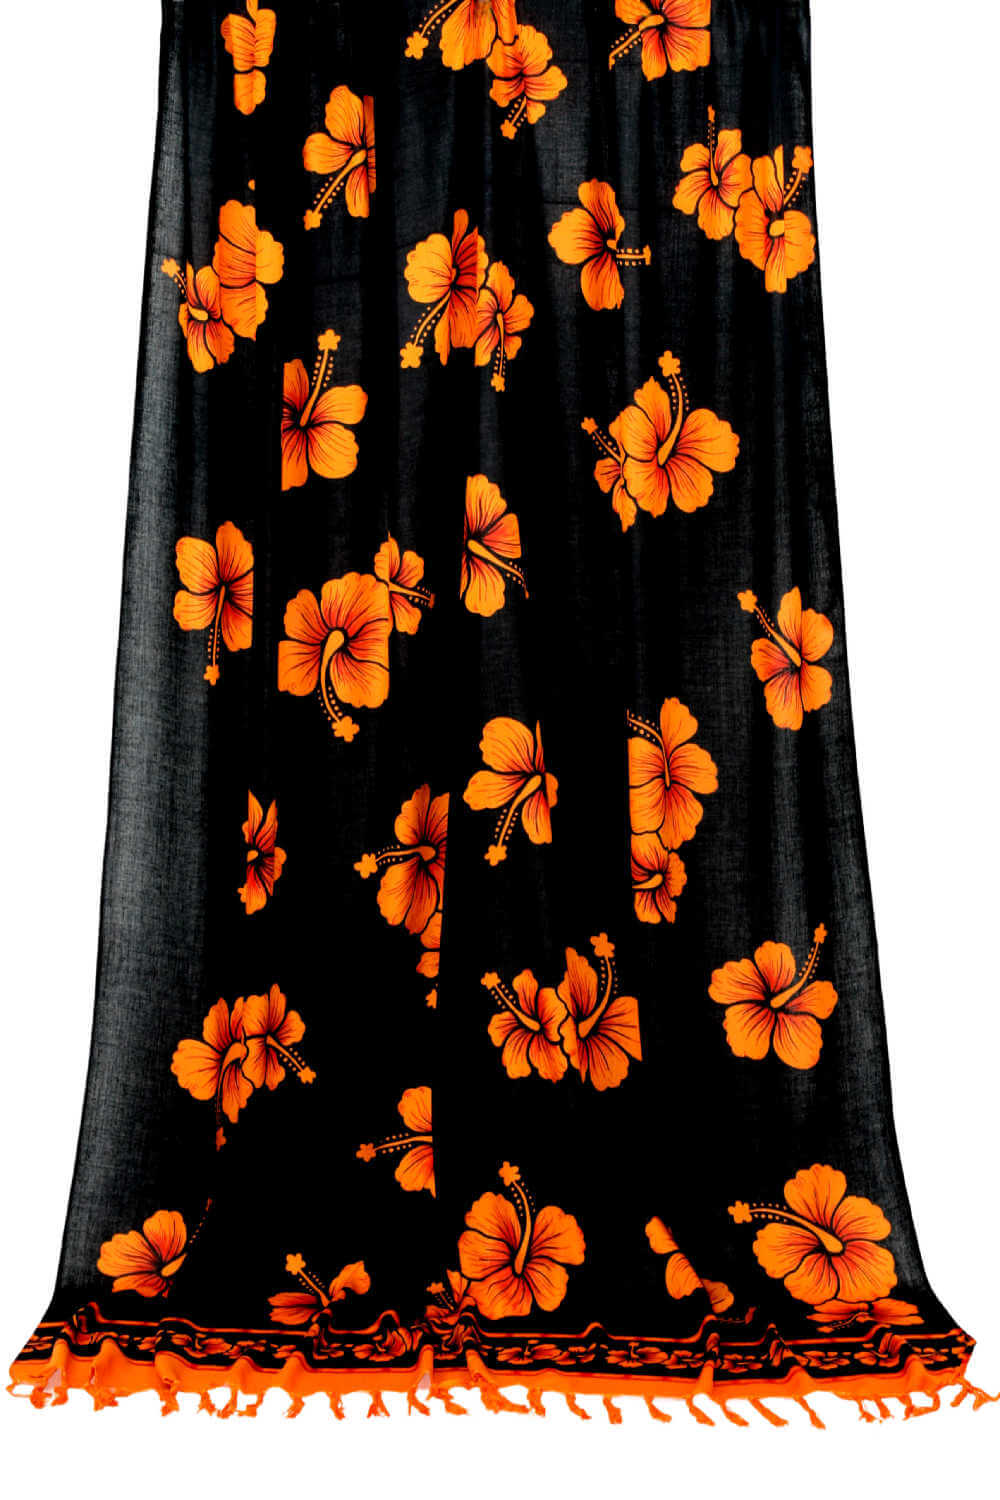 Hawaiian-beach-sarong-black-orange-hibiscus-flowers